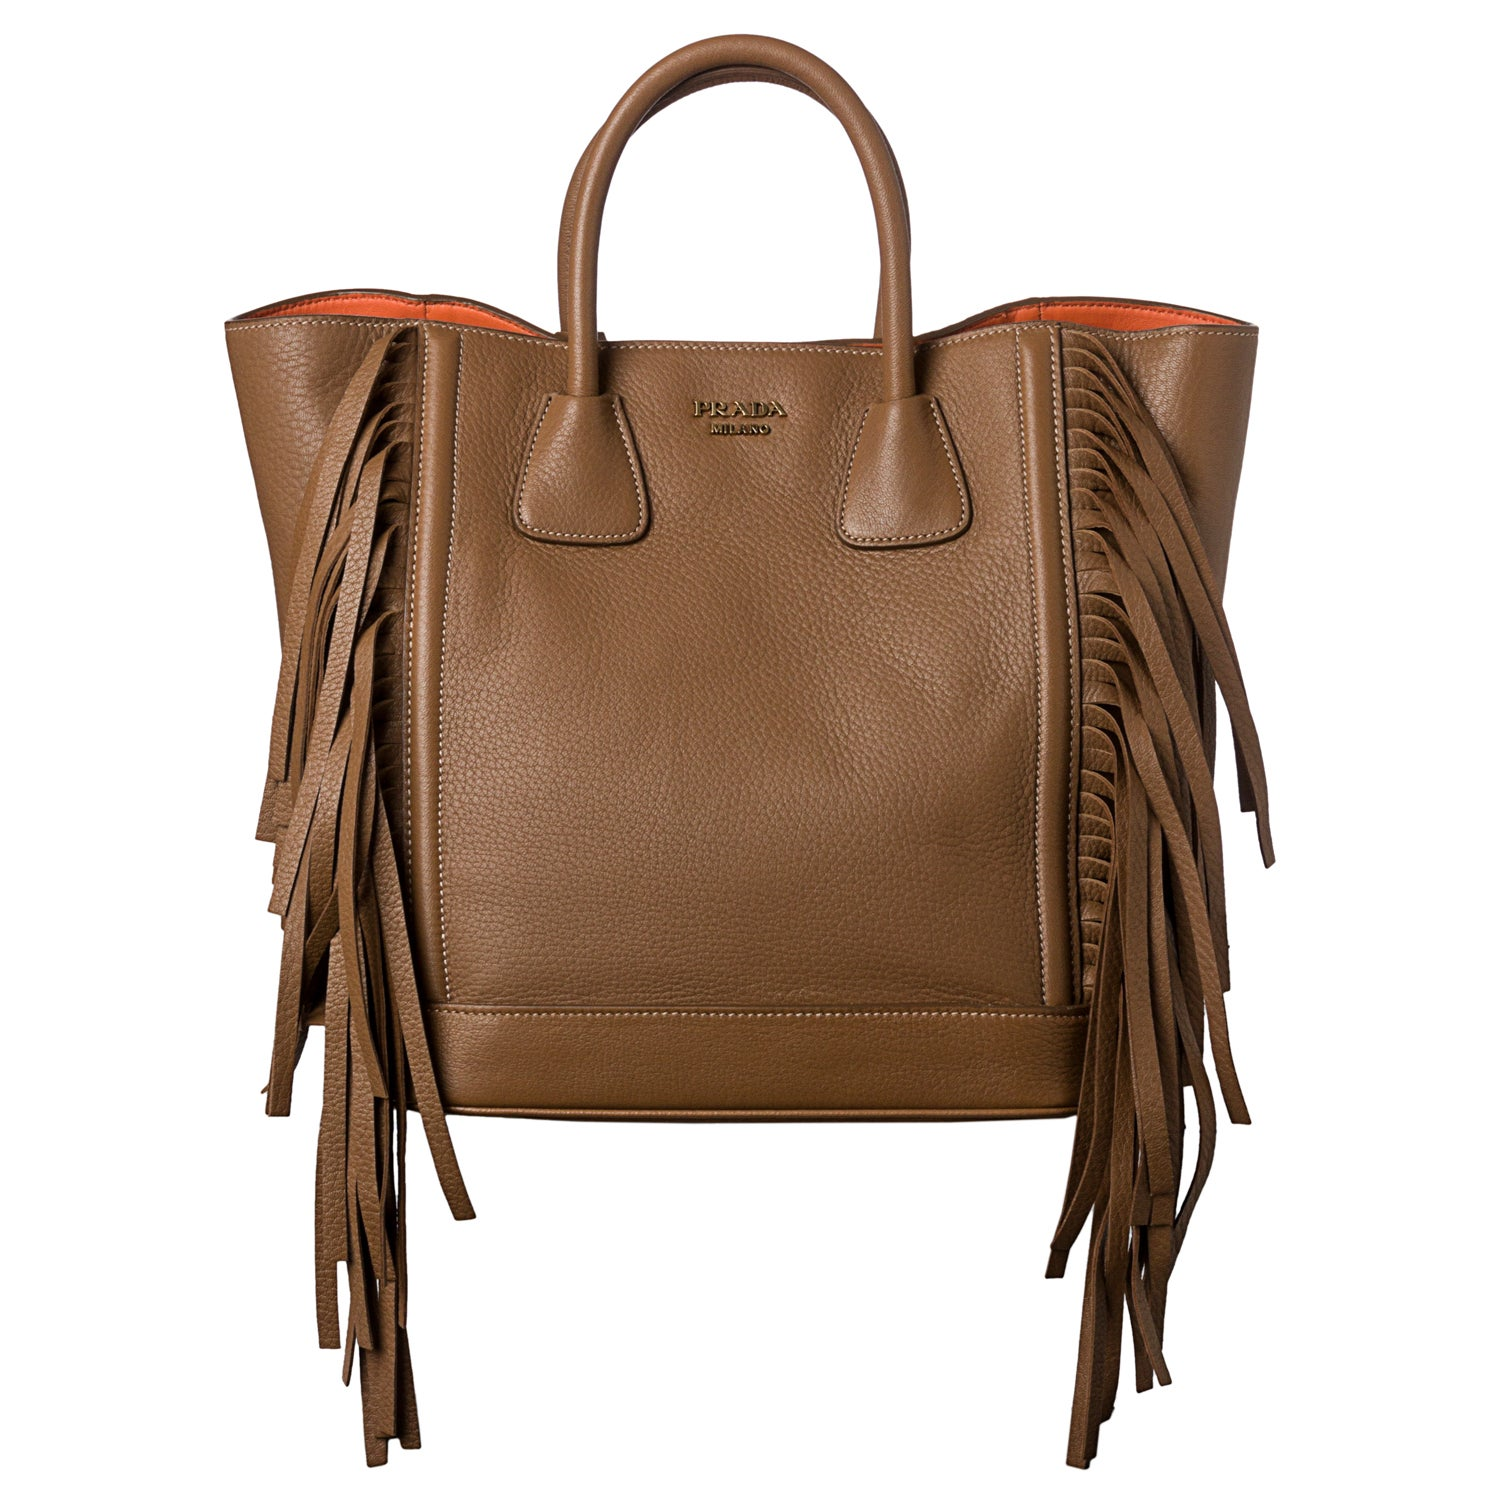 Shop Prada  Cervo  Camel Leather Side Fringe Tote Bag - Ships To Canada -  Overstock.ca - 7972277 50fa2e102cd3c